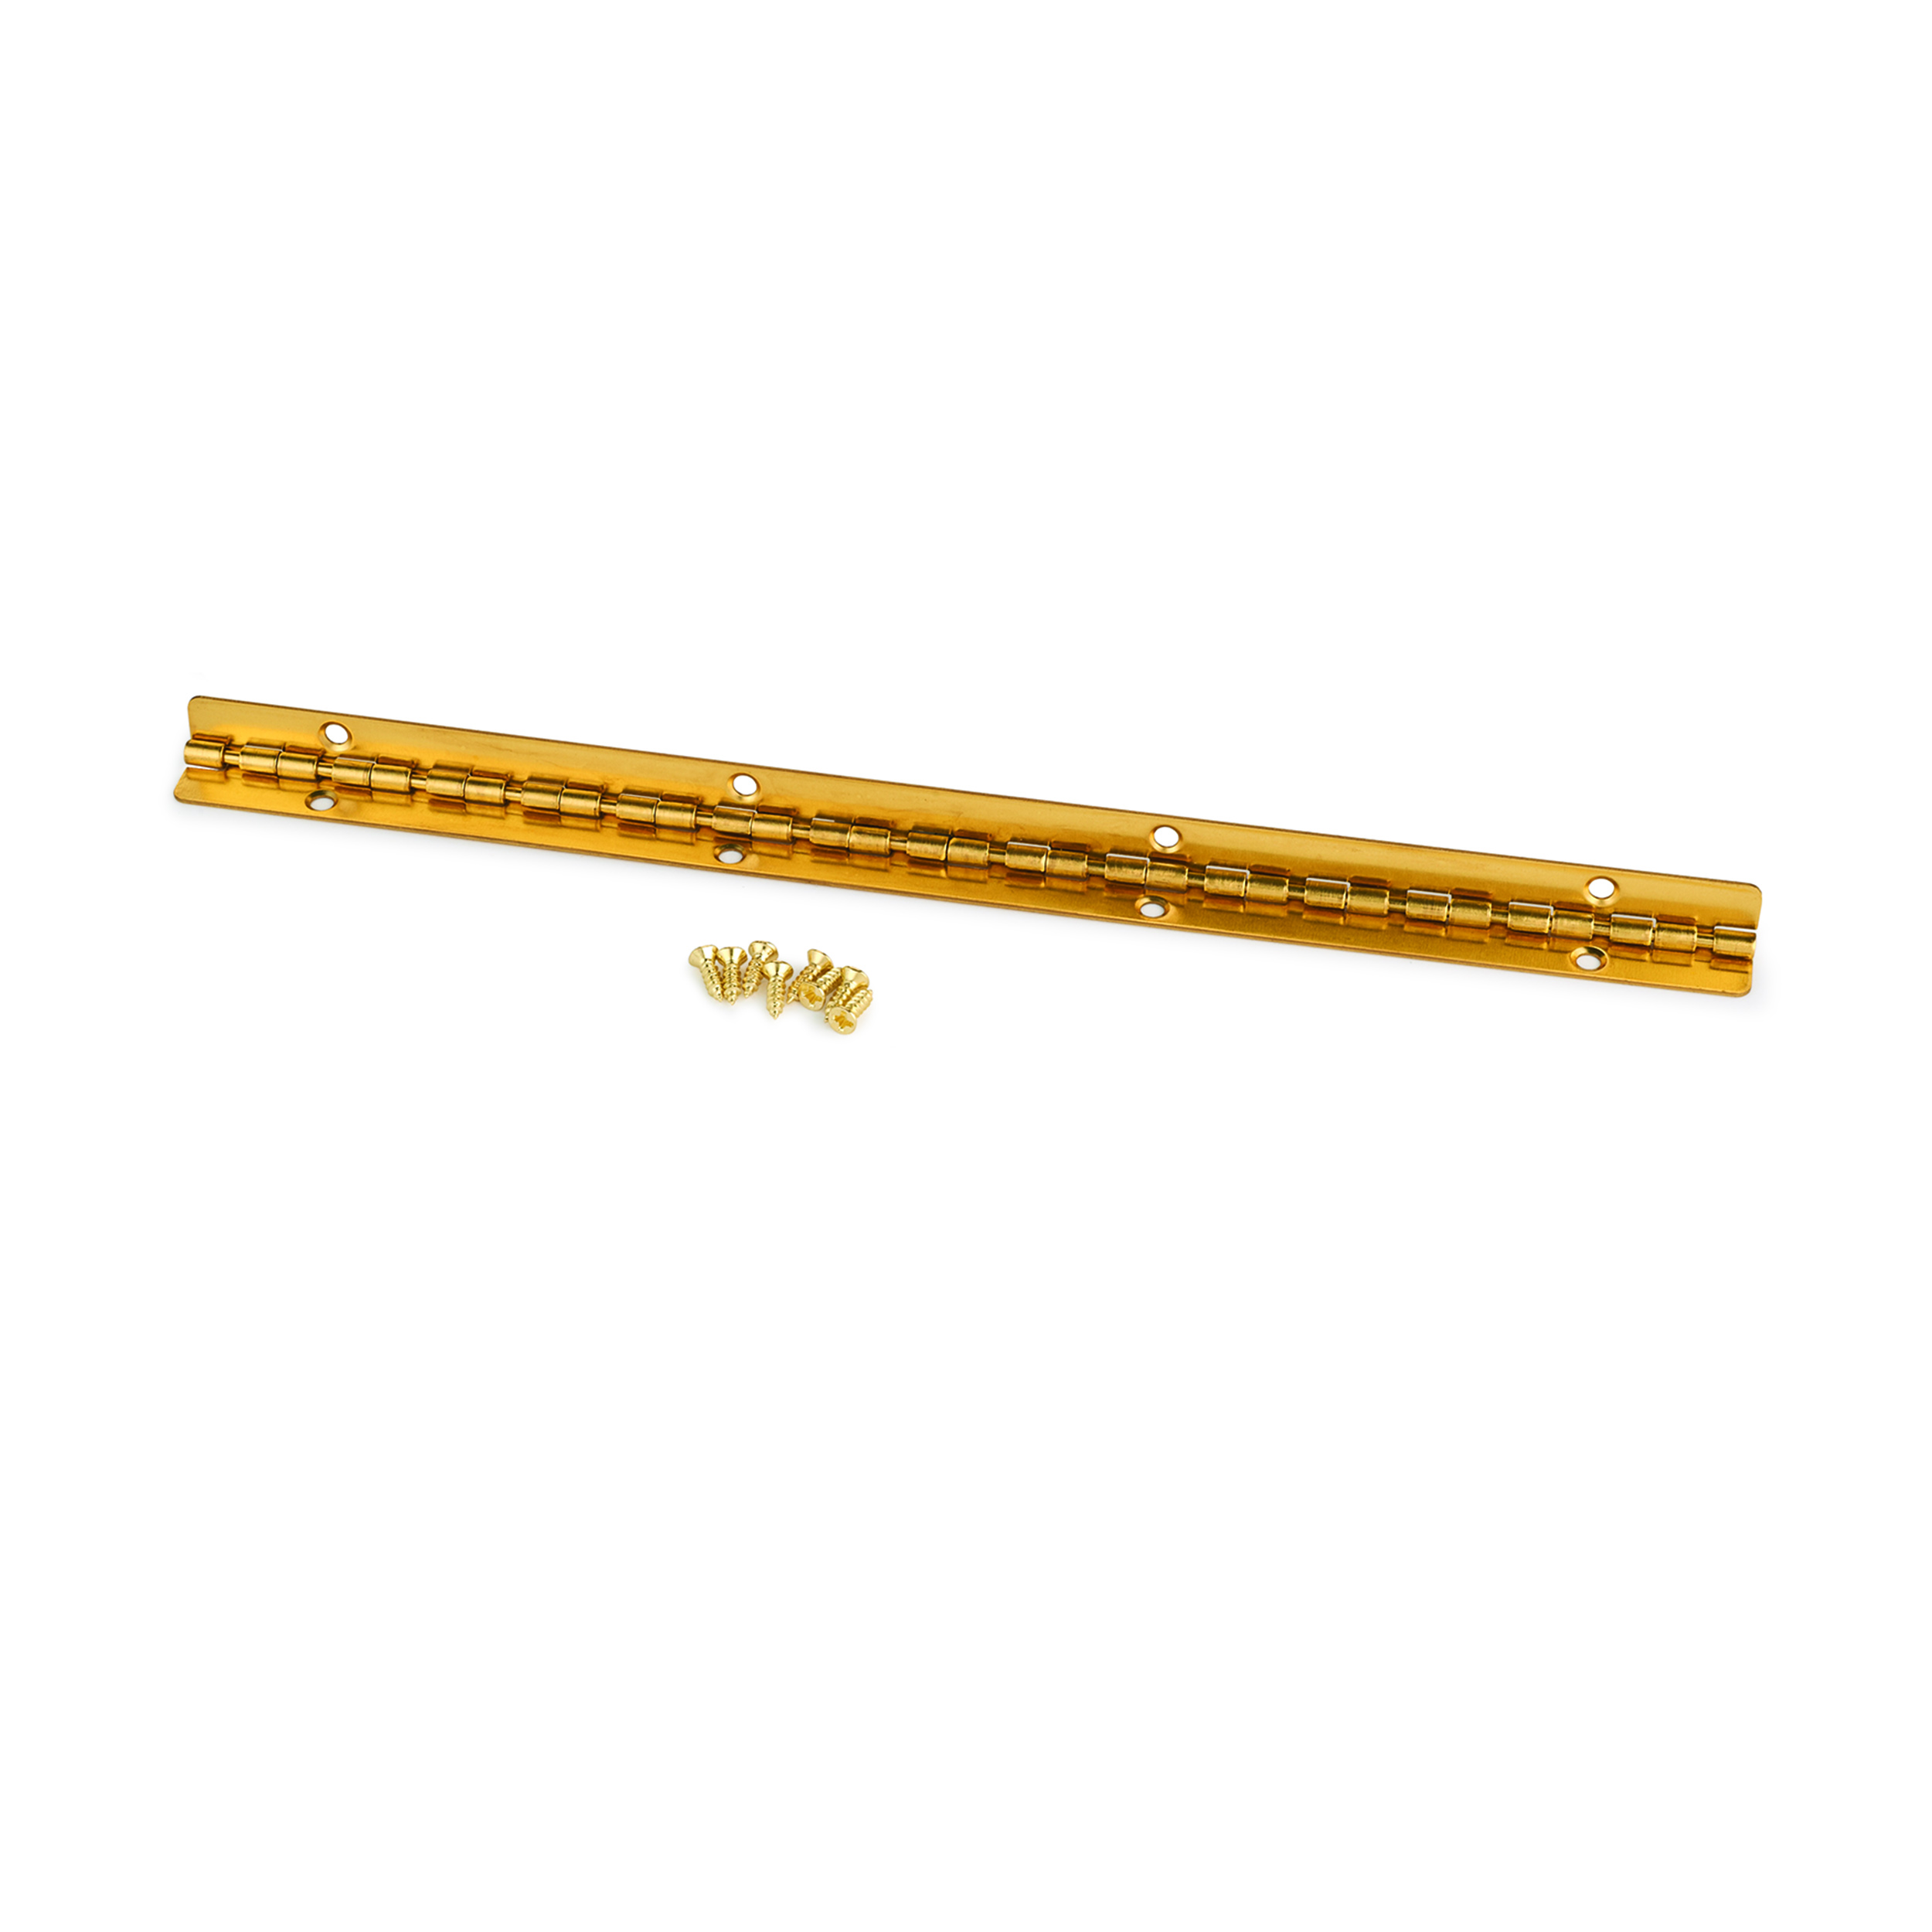 Small Piano Stop Hinge Brass Plated 200mm x 9mm